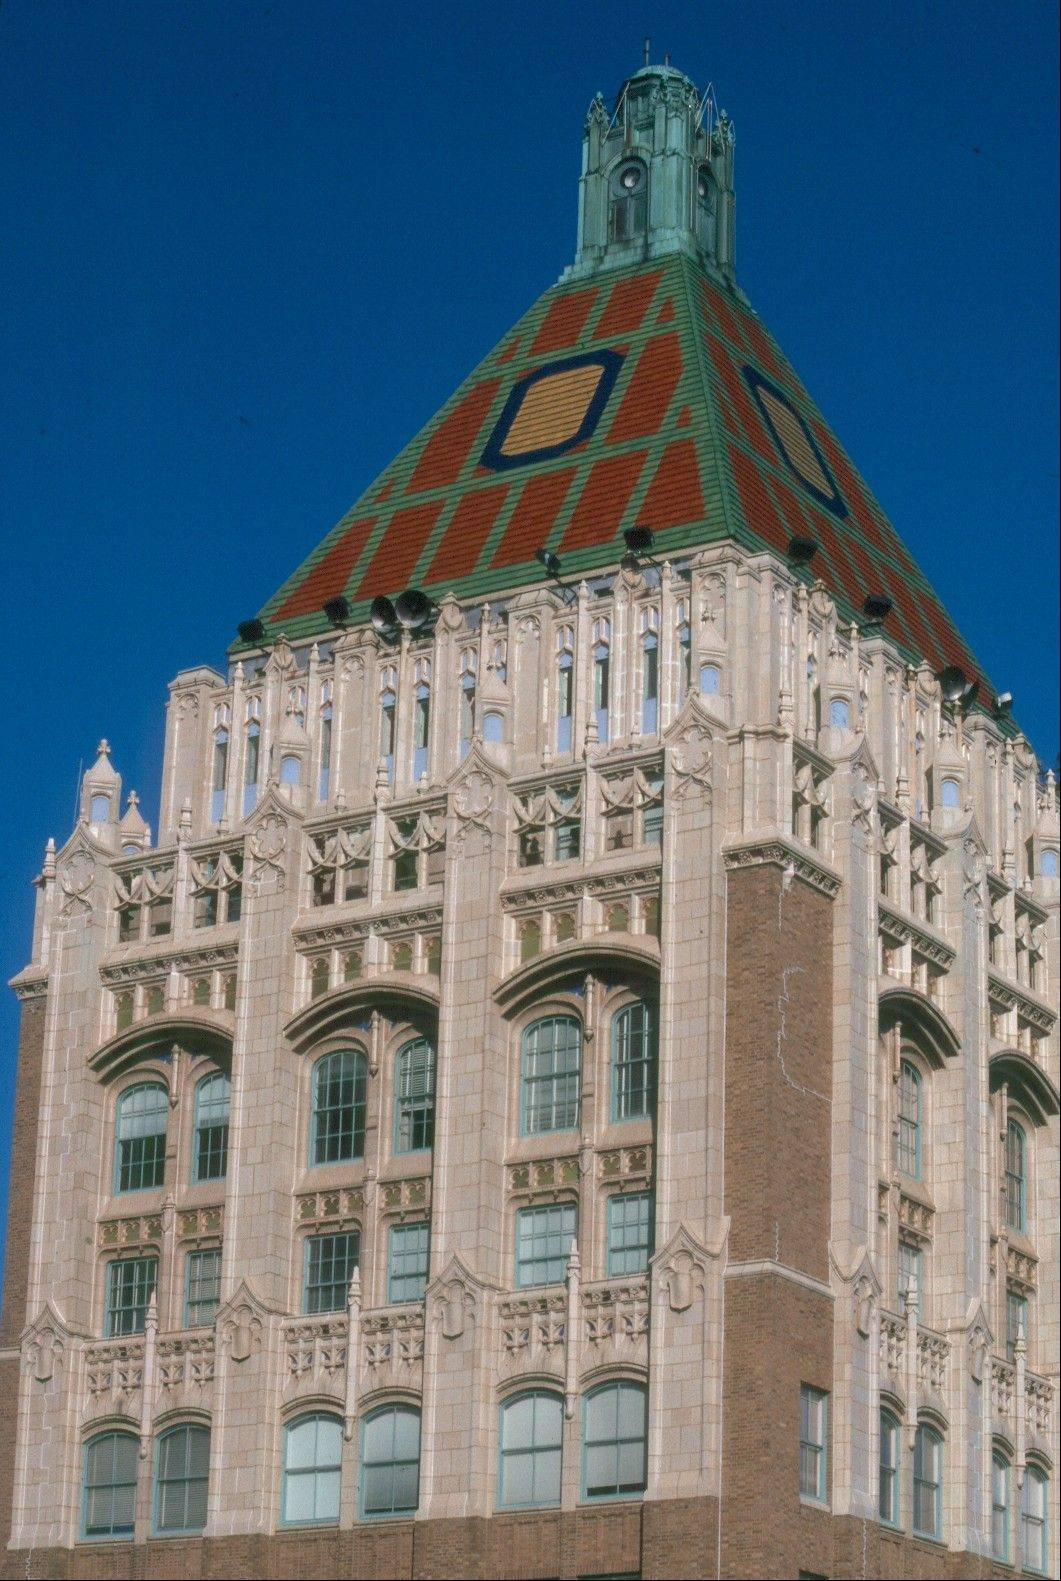 The Philtower Building is one of a number of notable Art Deco treasures in Tulsa mostly built in the 1920s during an oil boom.